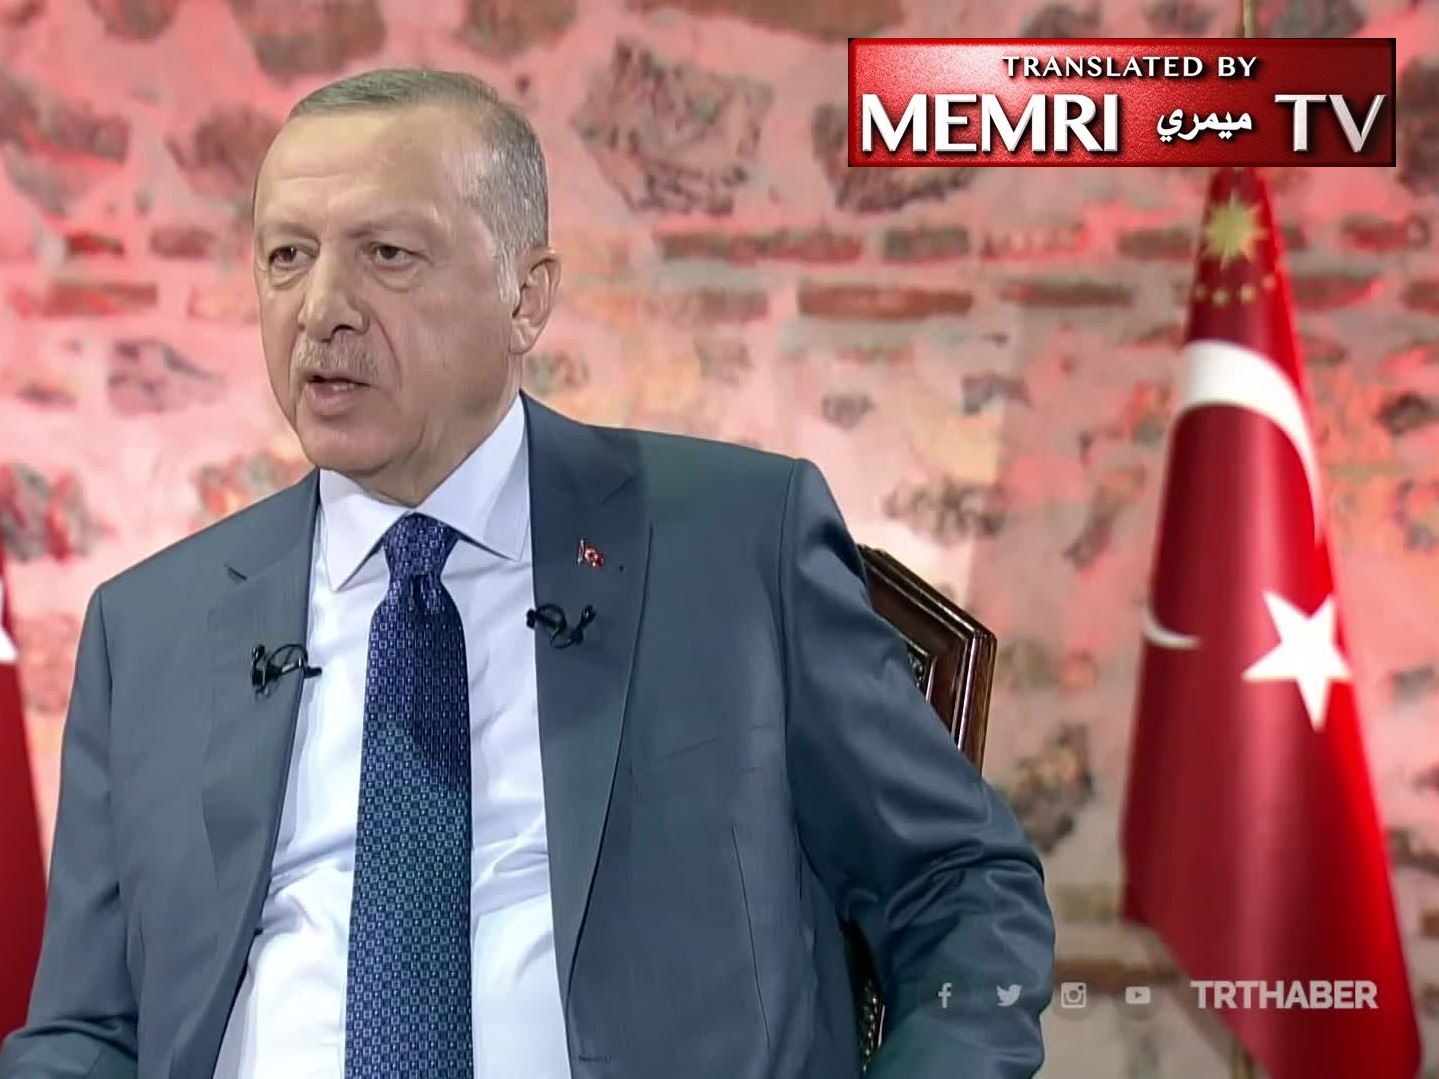 Turkish President Erdoğan: Northern Syria Suitable For Arabs, Not Kurds, Because Those Areas 'Are Desert Regions'